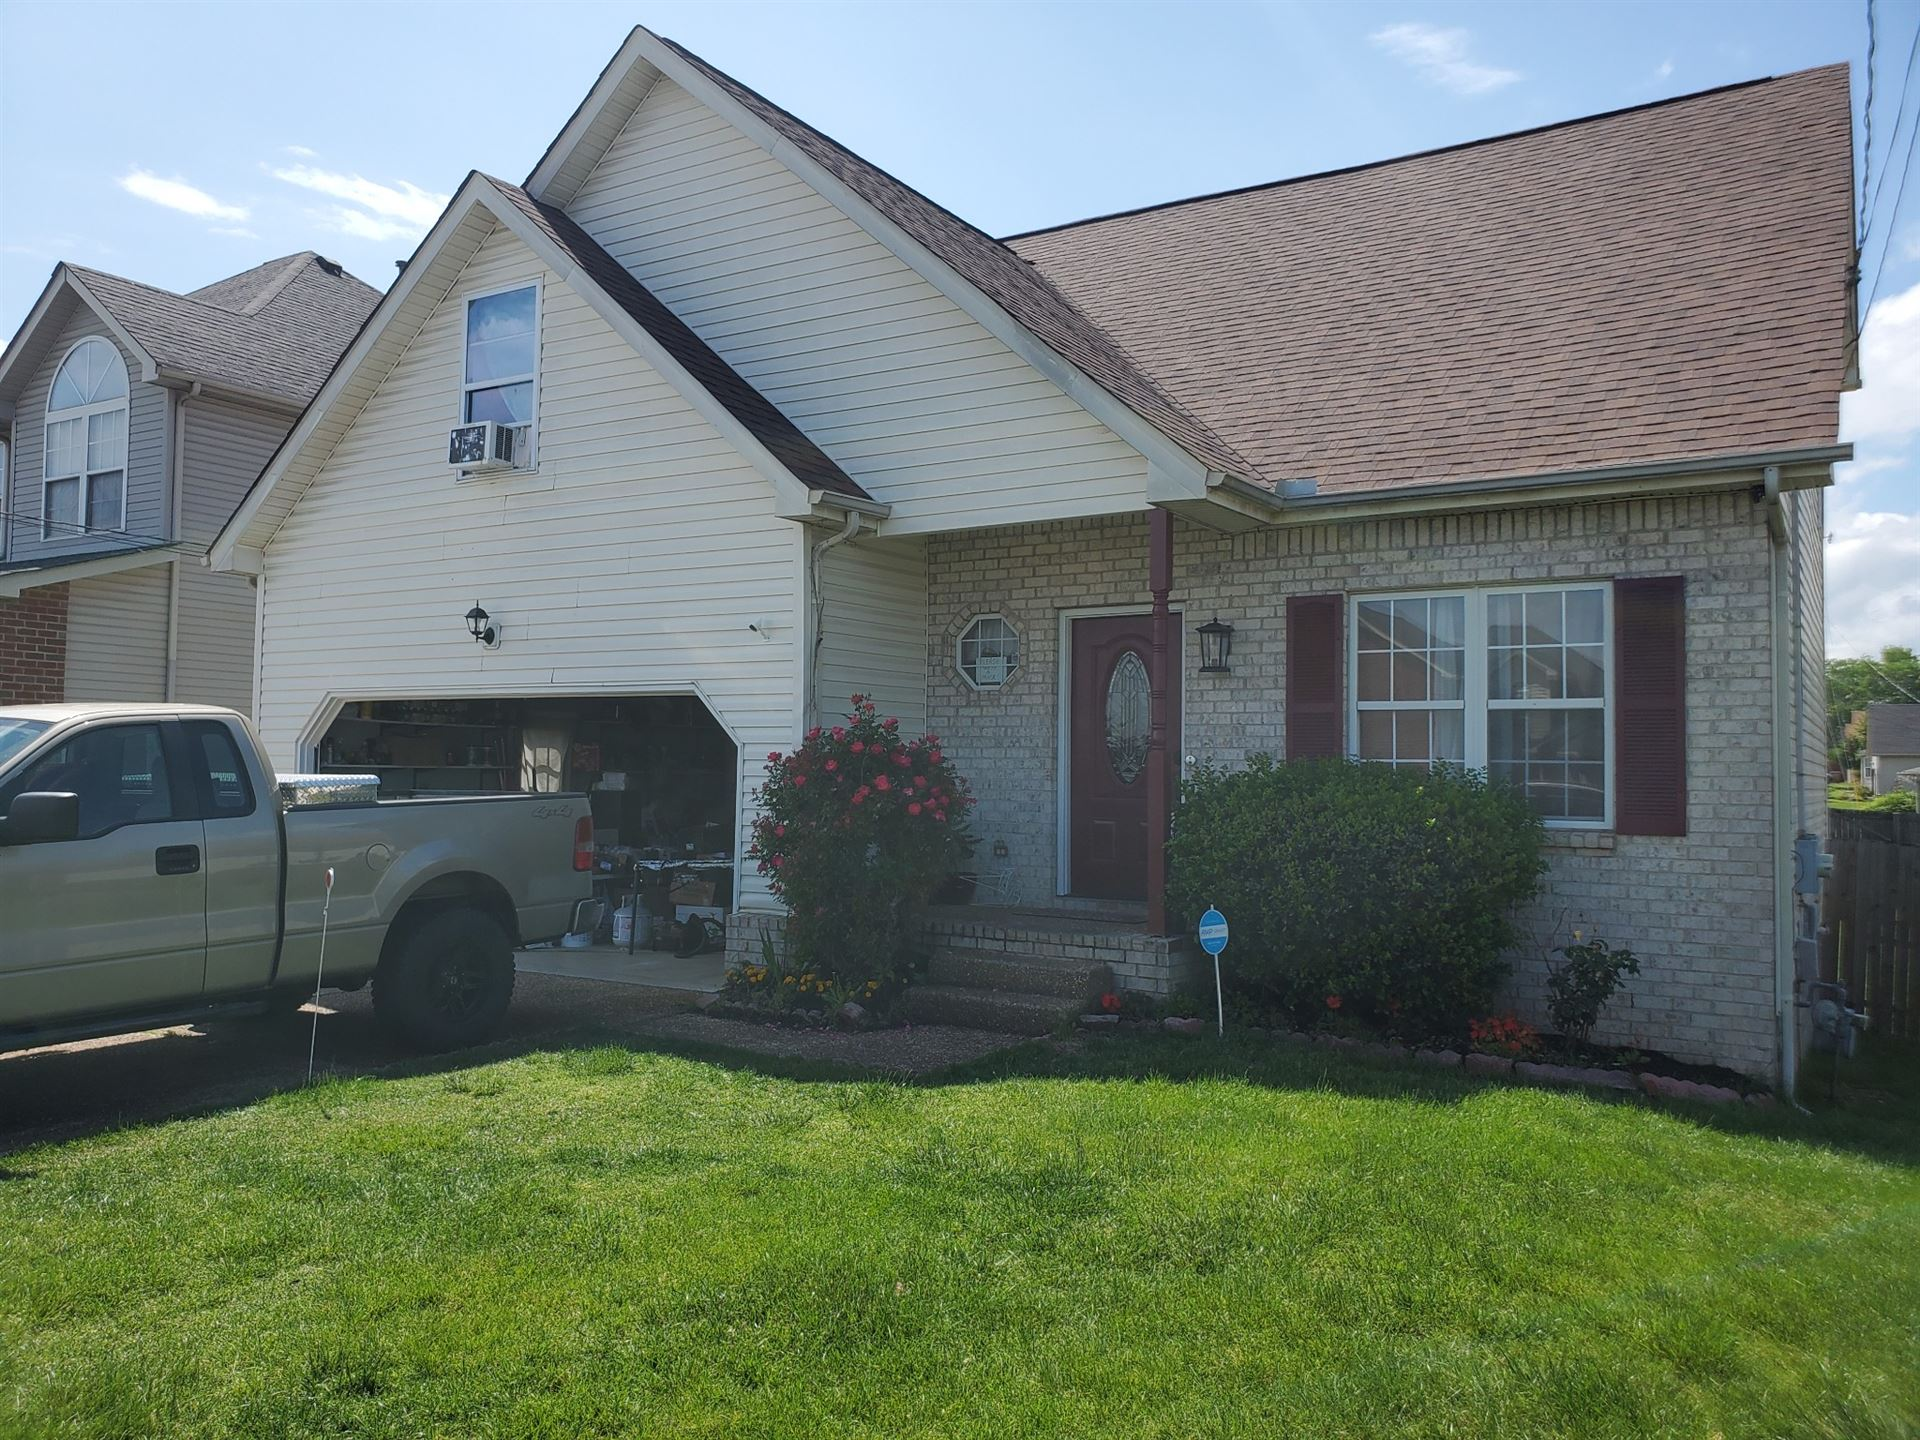 6412 Wildgrove Dr NE, Antioch, TN 37013 - MLS#: 2250228